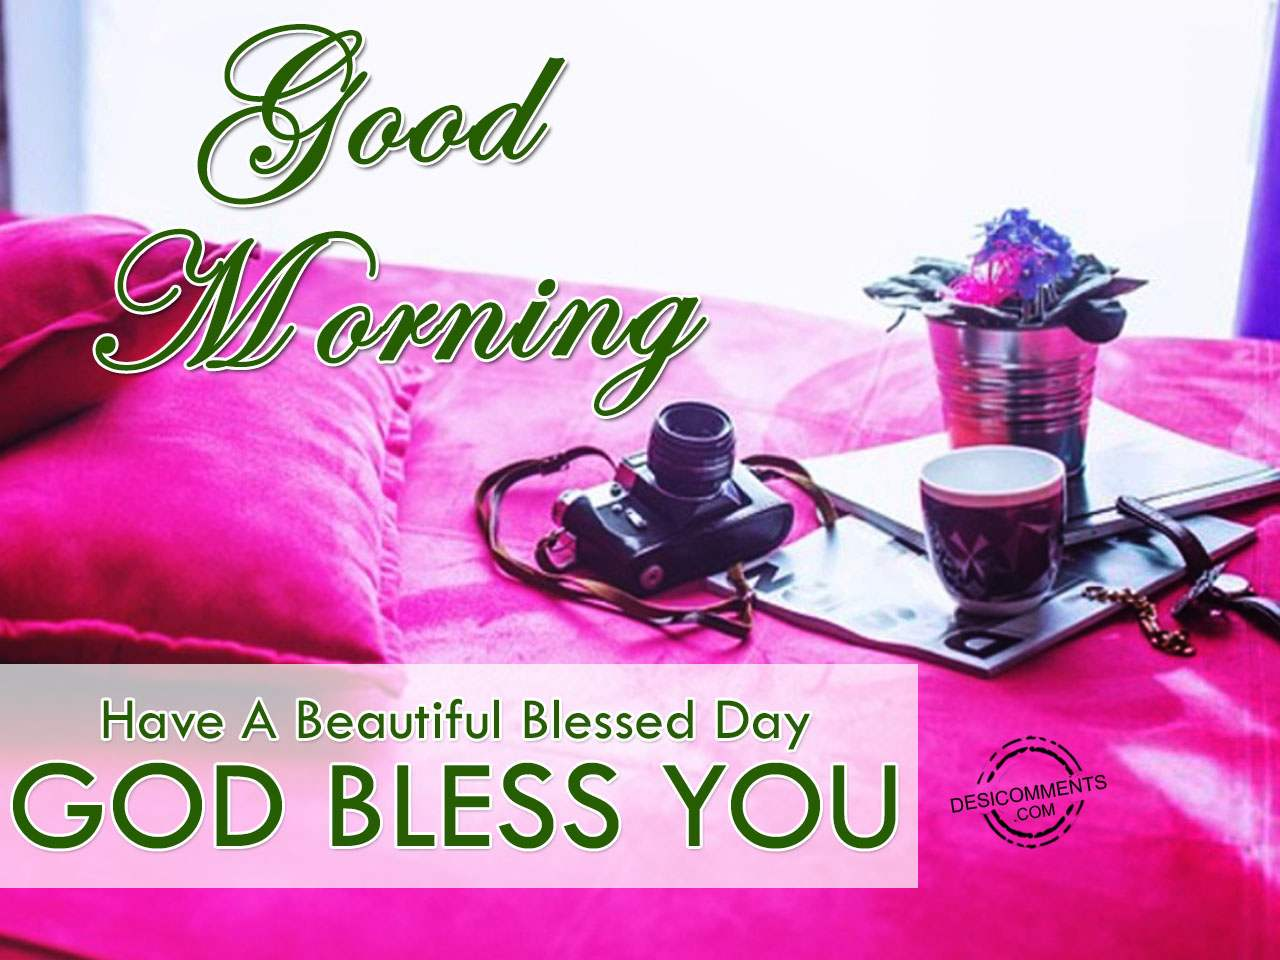 Good Morning Beautiful Have A Blessed Day : Good morning pictures images graphics page